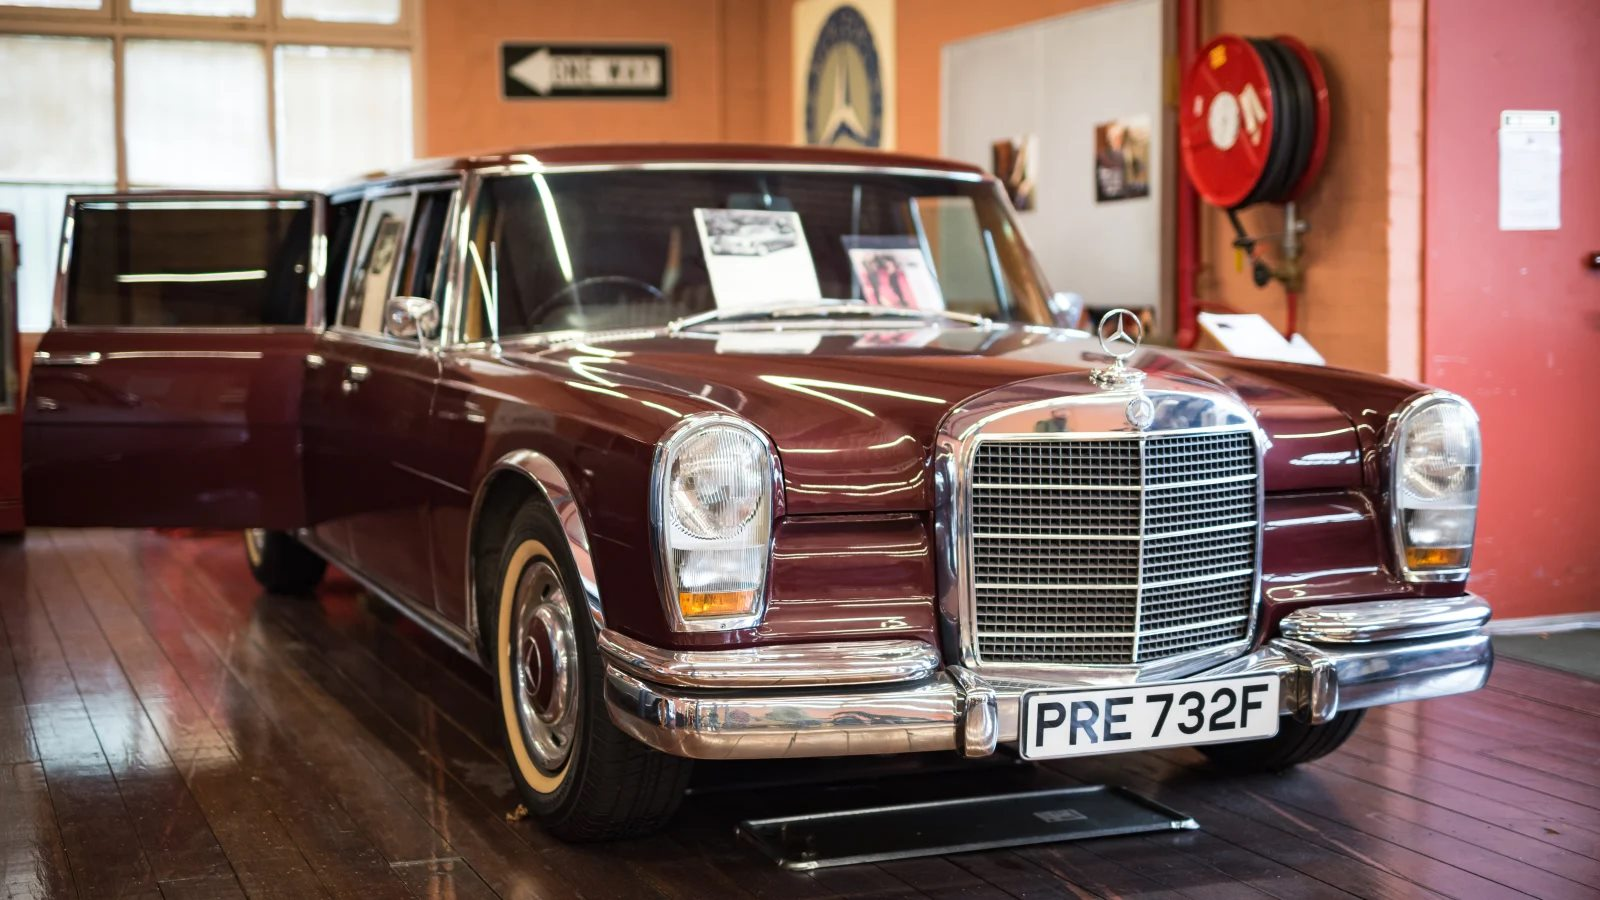 one of the Ringo Starr car - Mercedes 600